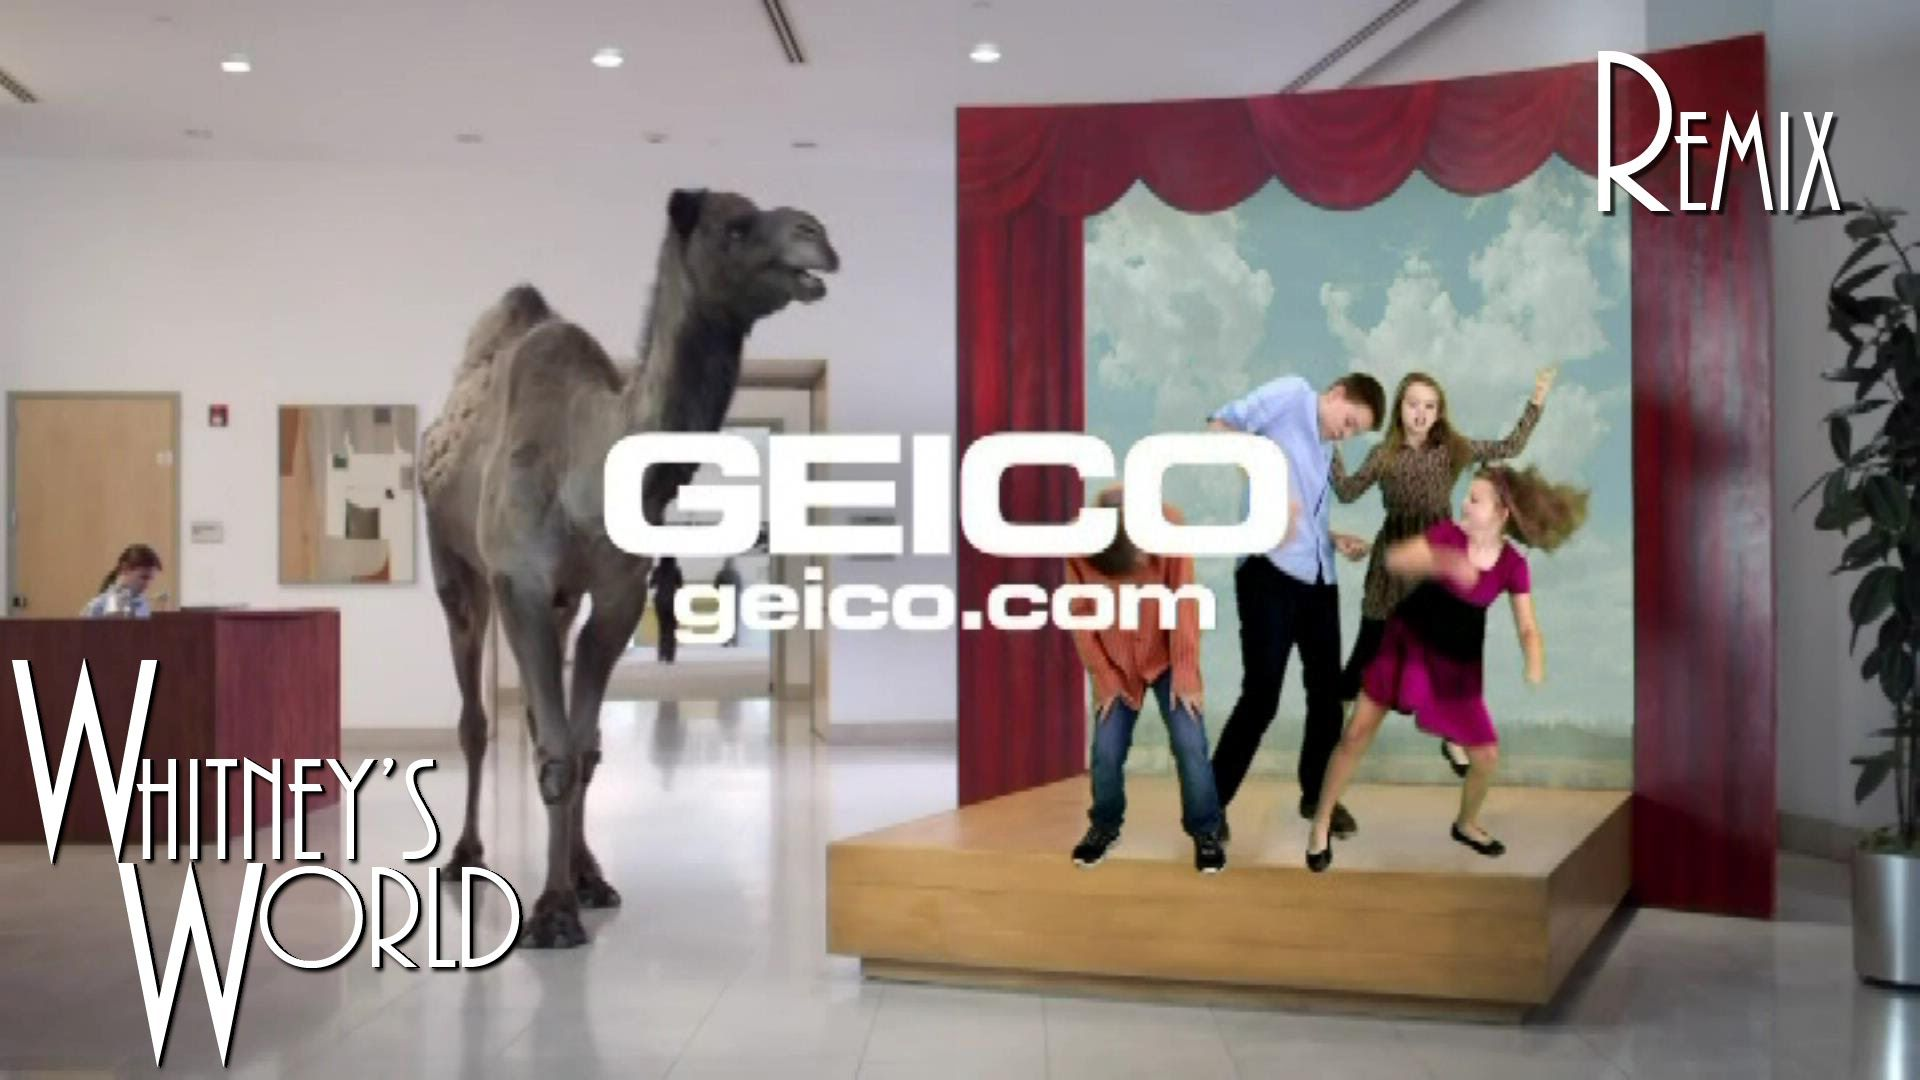 Hump Day Remix Geico Camel Guess What Day It Is Whitney